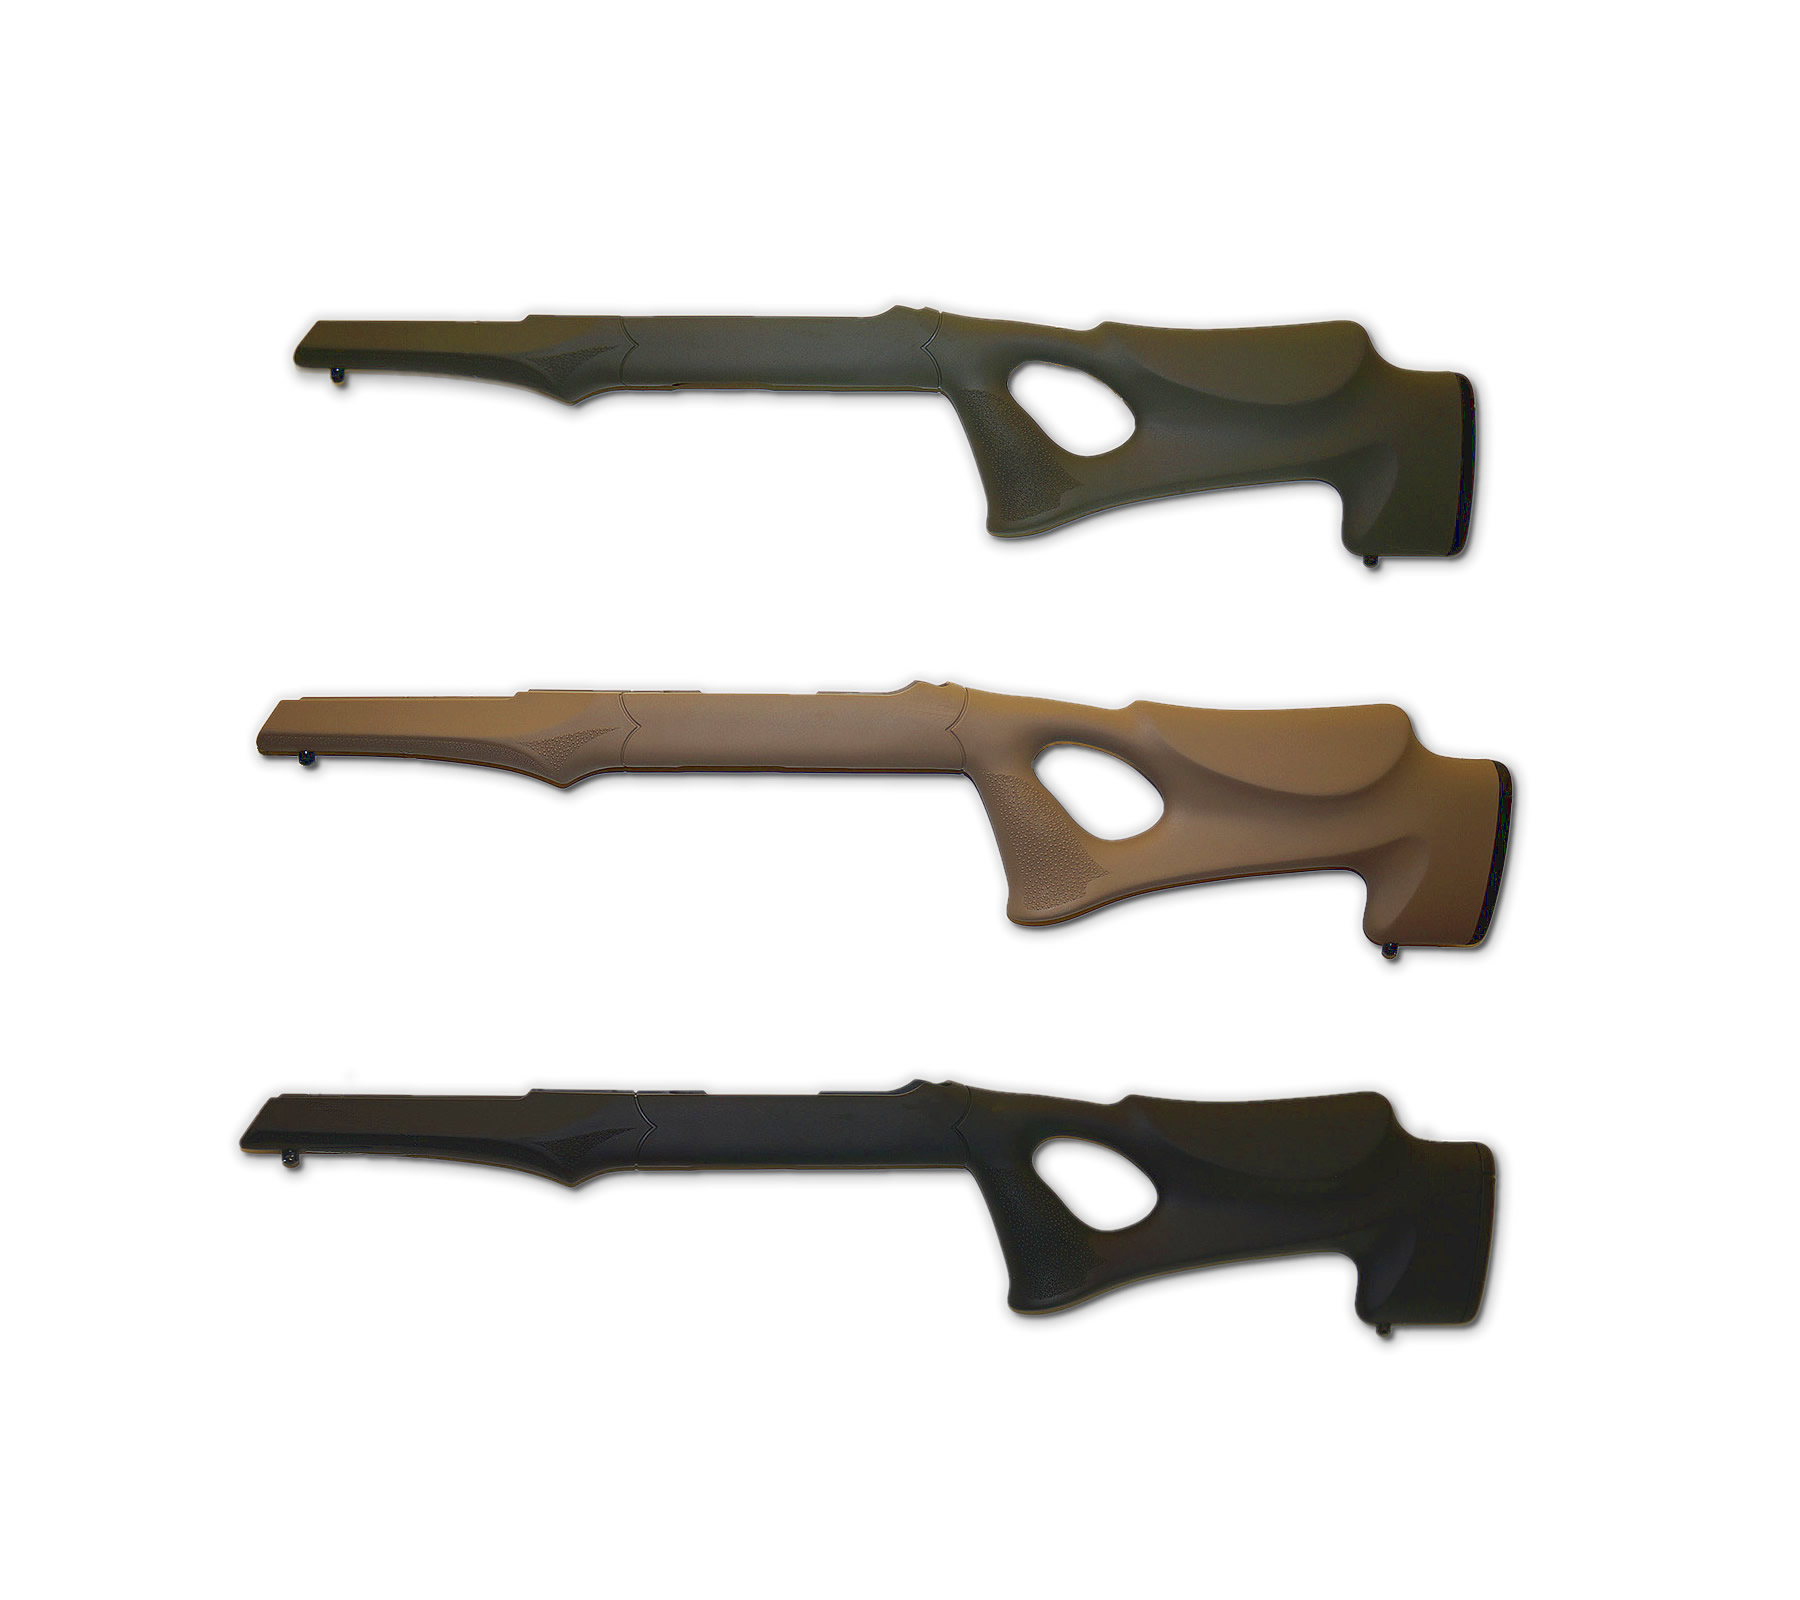 HOGUE Overmolded Tactical Thumbhole Stock for 10/22